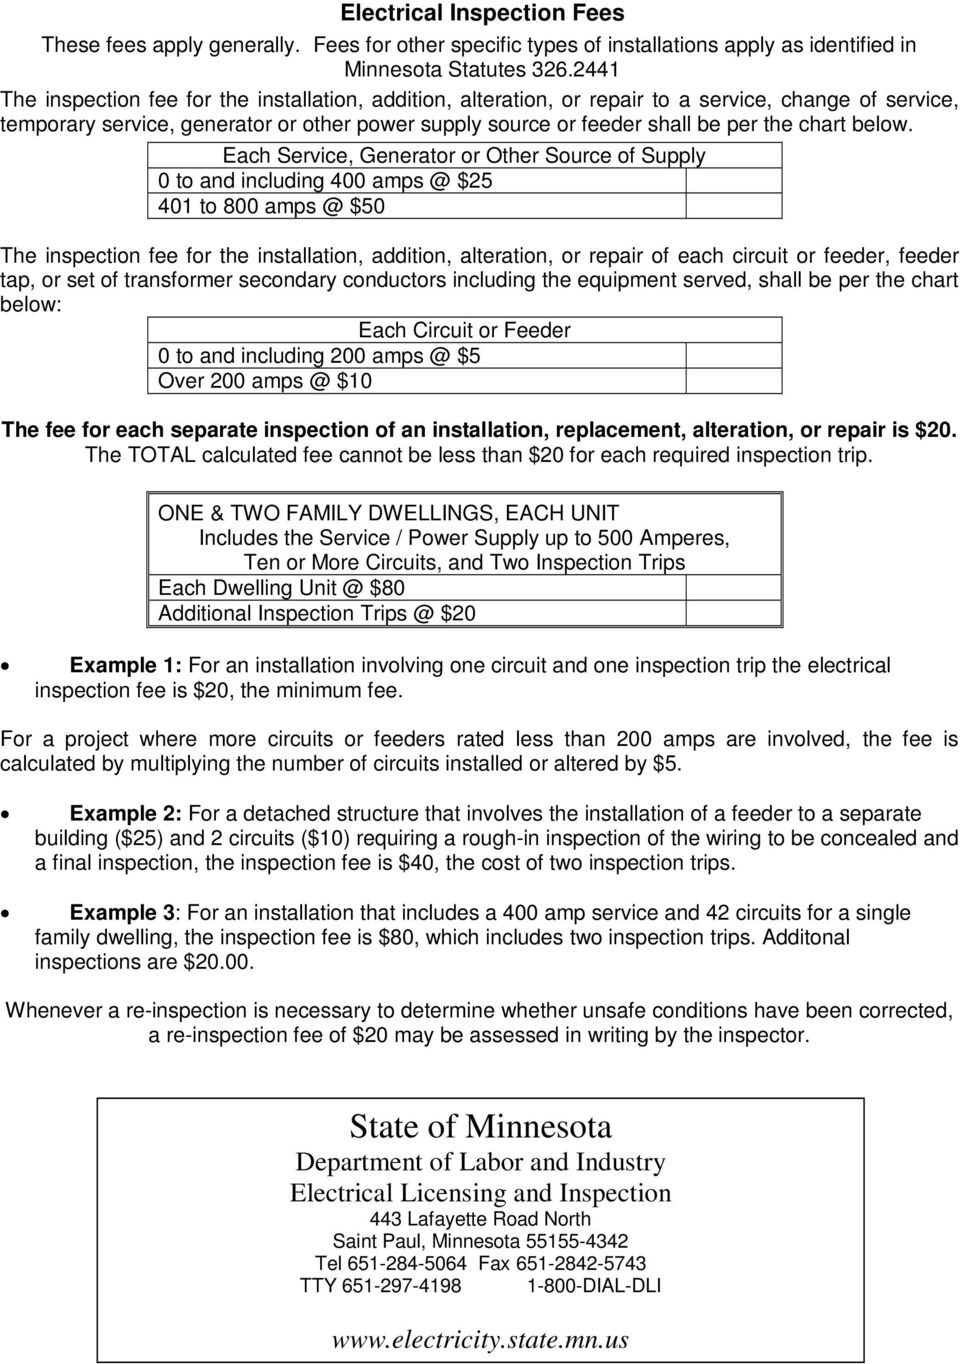 Residential Electrical Inspection  Checklist - PDF